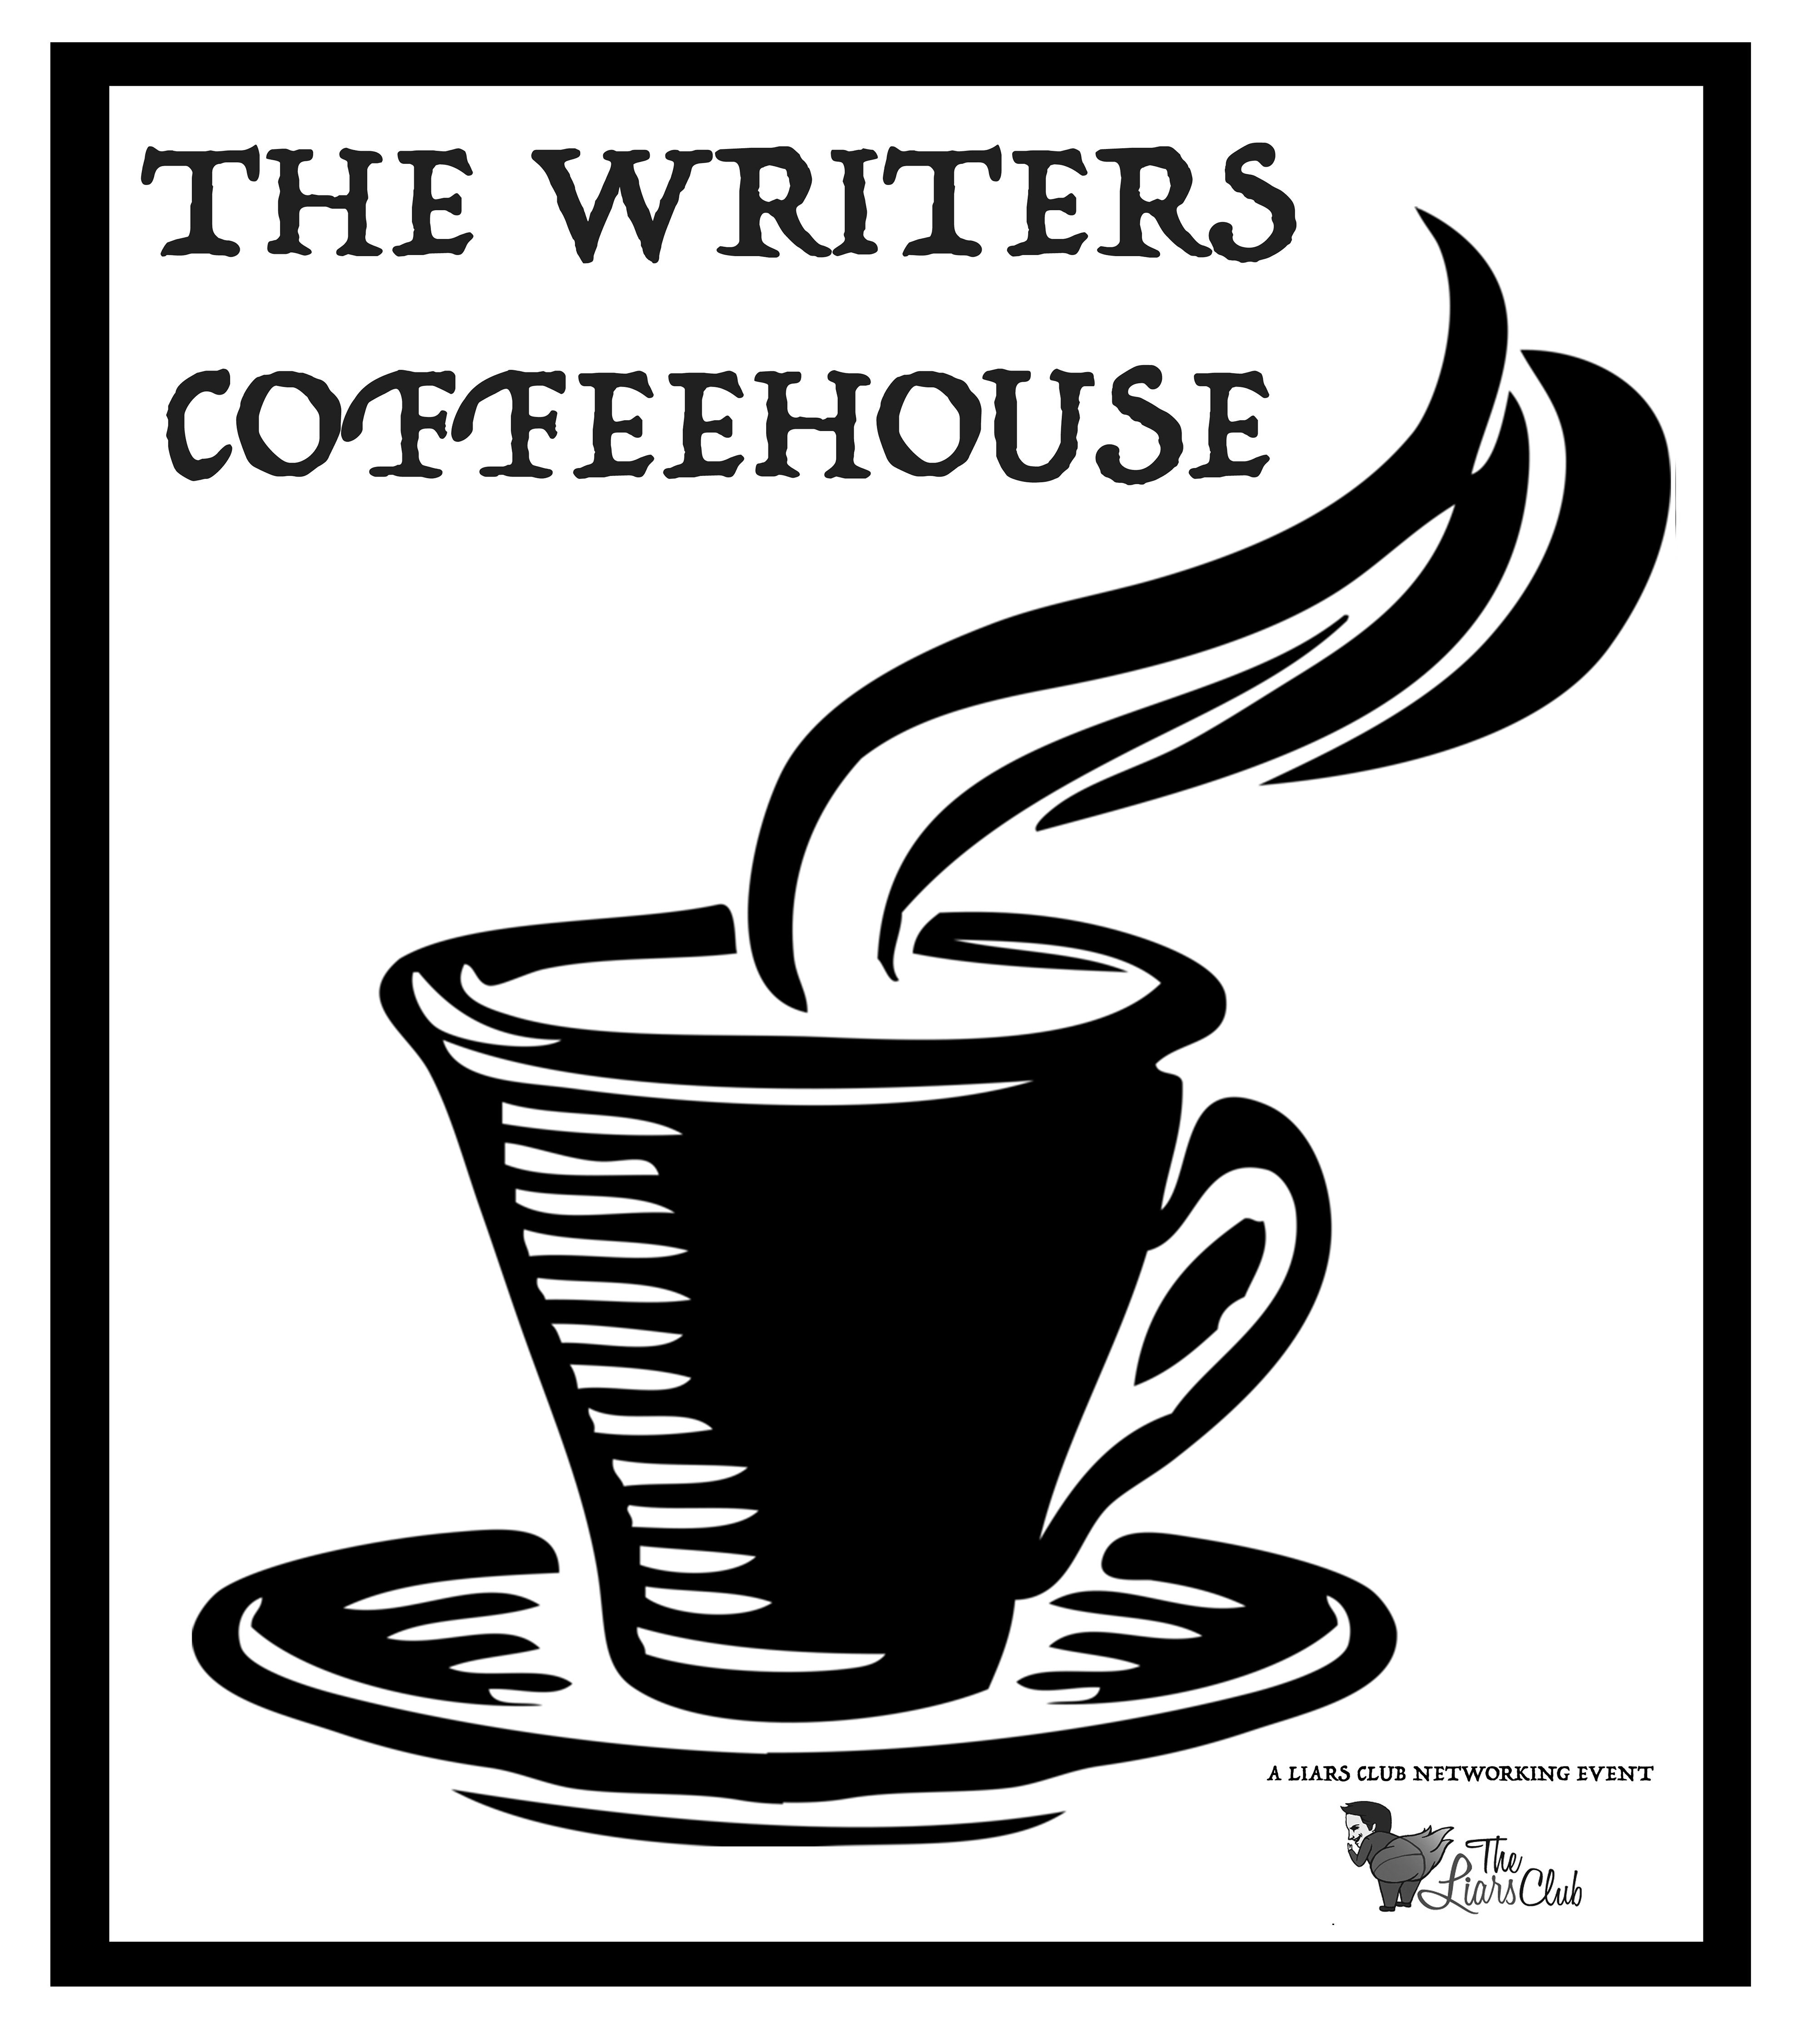 COFFEHOUSE LOGO 3 (003)